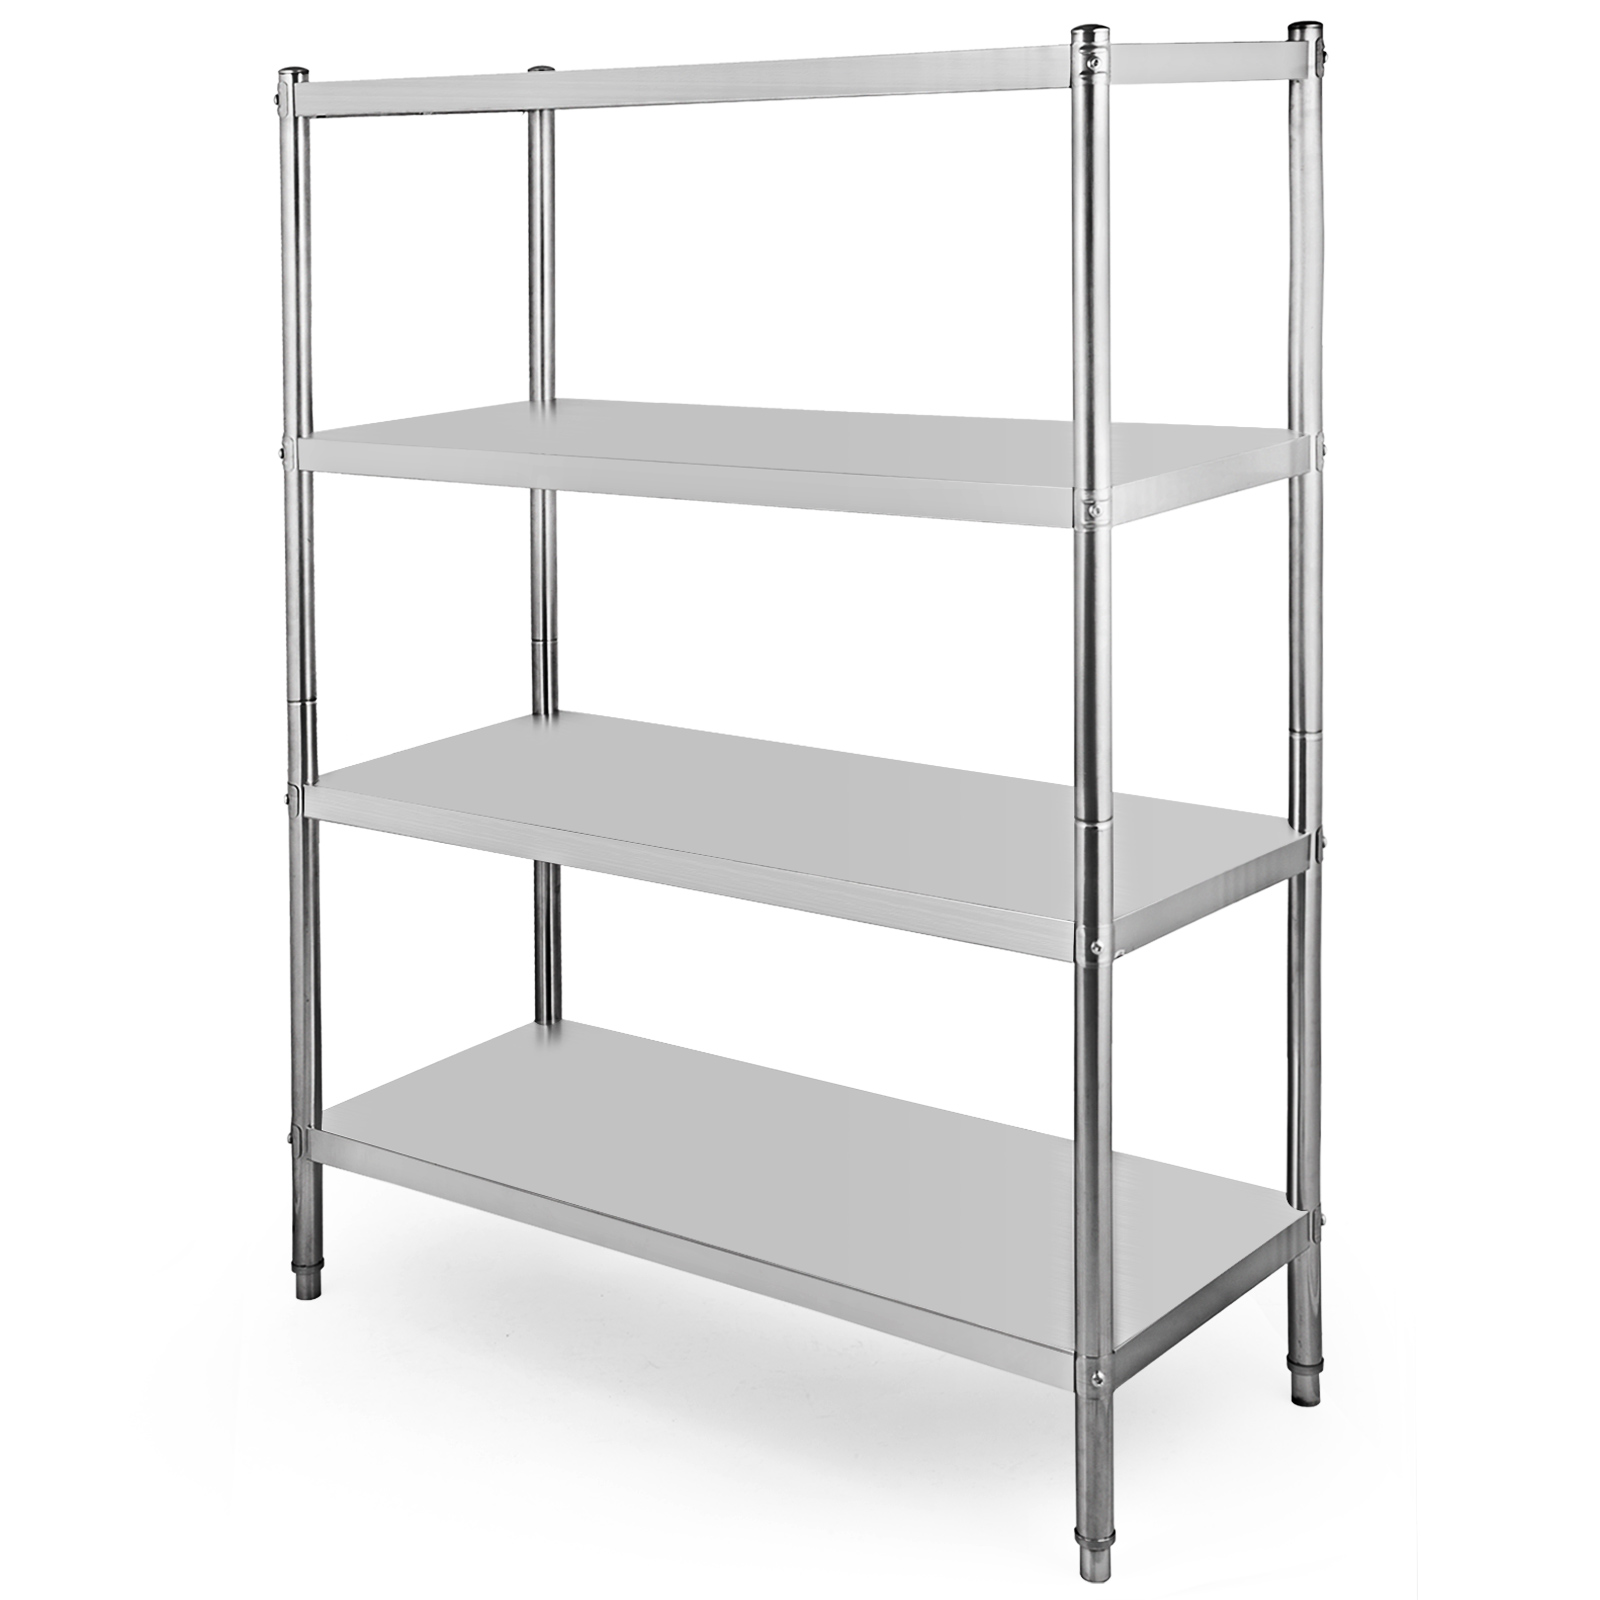 Details about Stainless Steel Kitchen Shelf Shelving Rack 4-Shelf  Commercial Canteens Storage